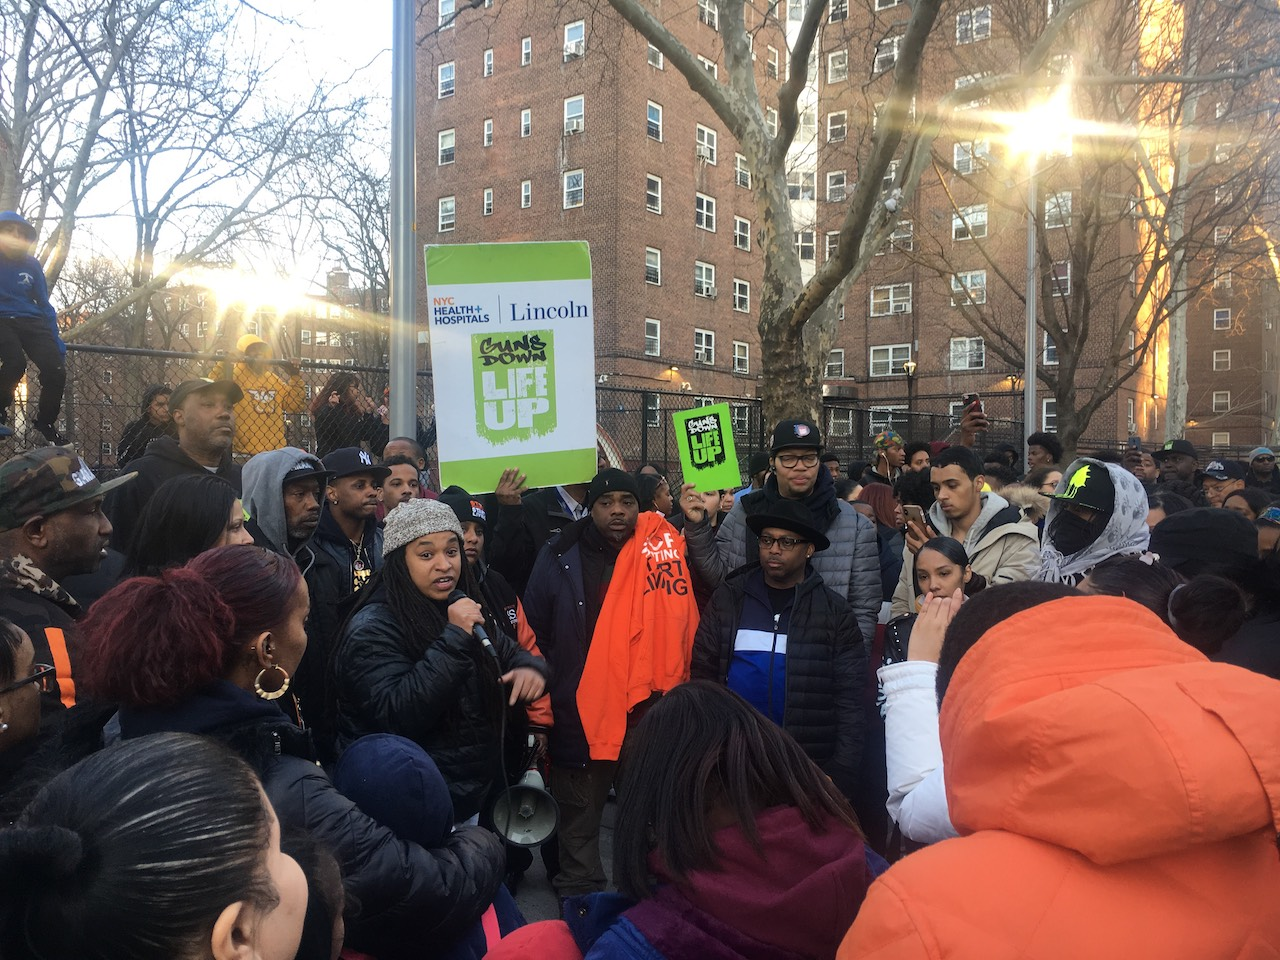 Anti-violence groups rally to denounce shooting of Patterson teen